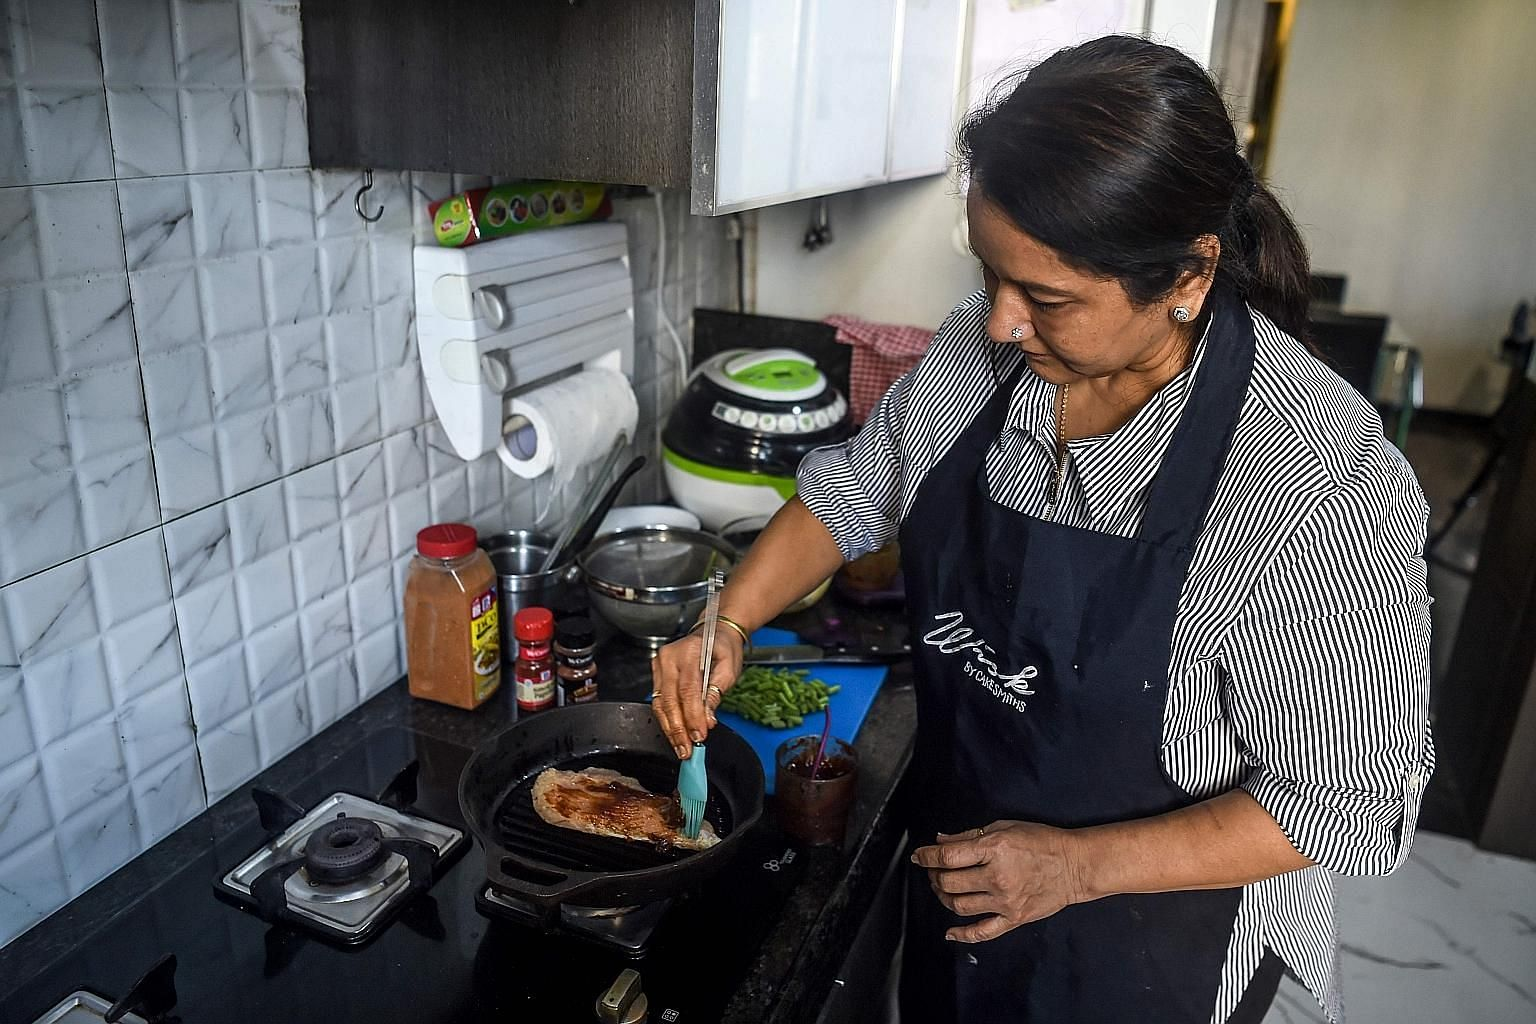 Madam Rashmi Sahijwala preparing a dish in her kitchen in Mumbai. New apps like Curryful, Homefoodi and Nanighar are giving Indian housewives - many of whom have long struggled to convince conservative families to let them leave home - an opportunity